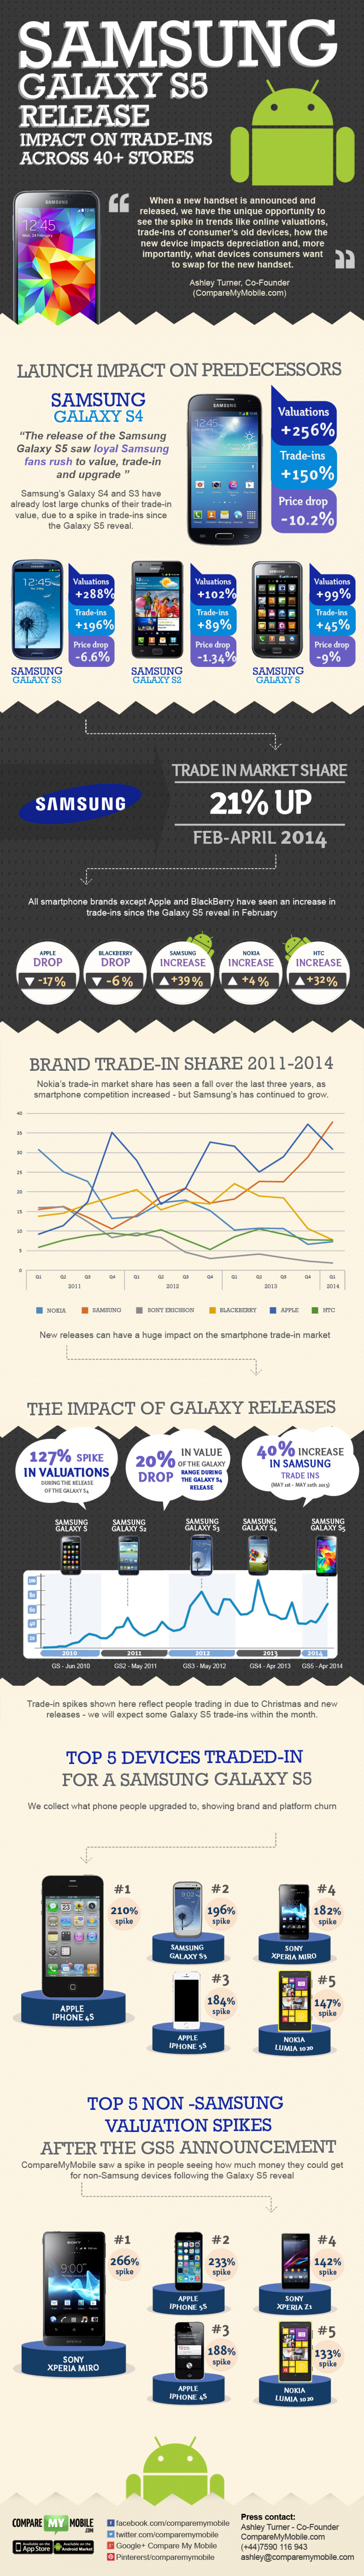 Samsung Galaxy S5 Release Infographic